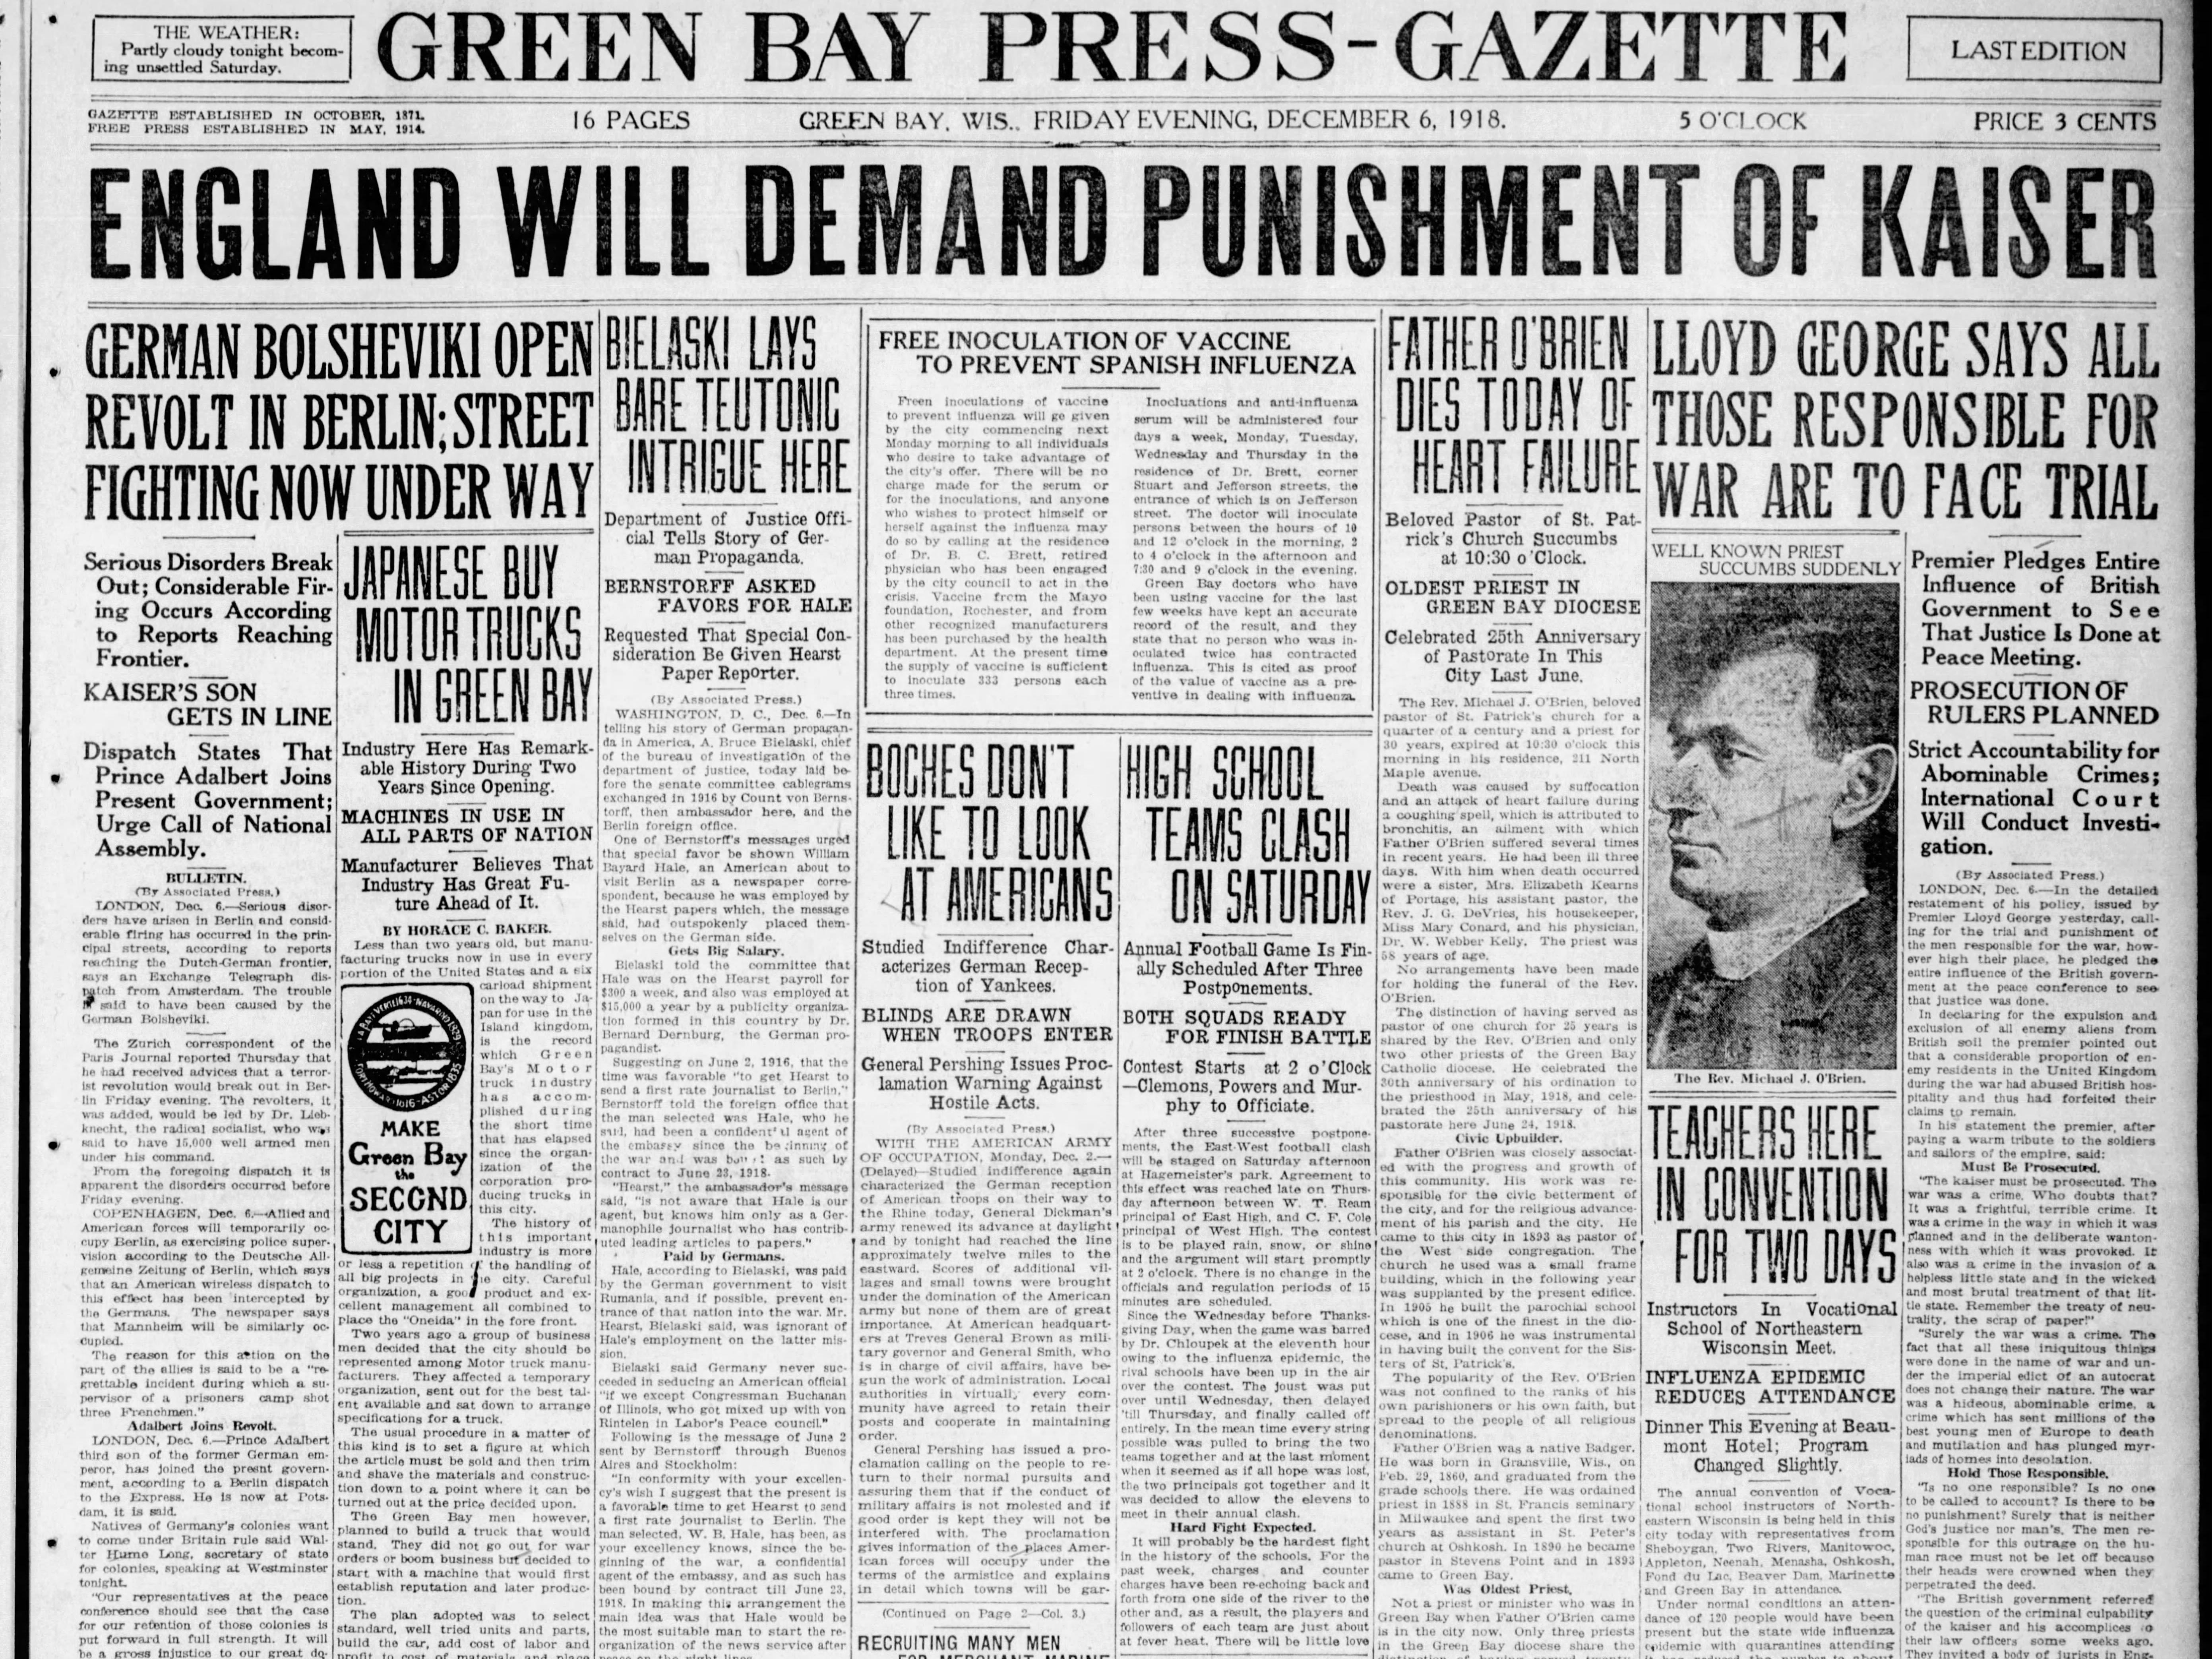 Today in History:  Dec. 6, 1918